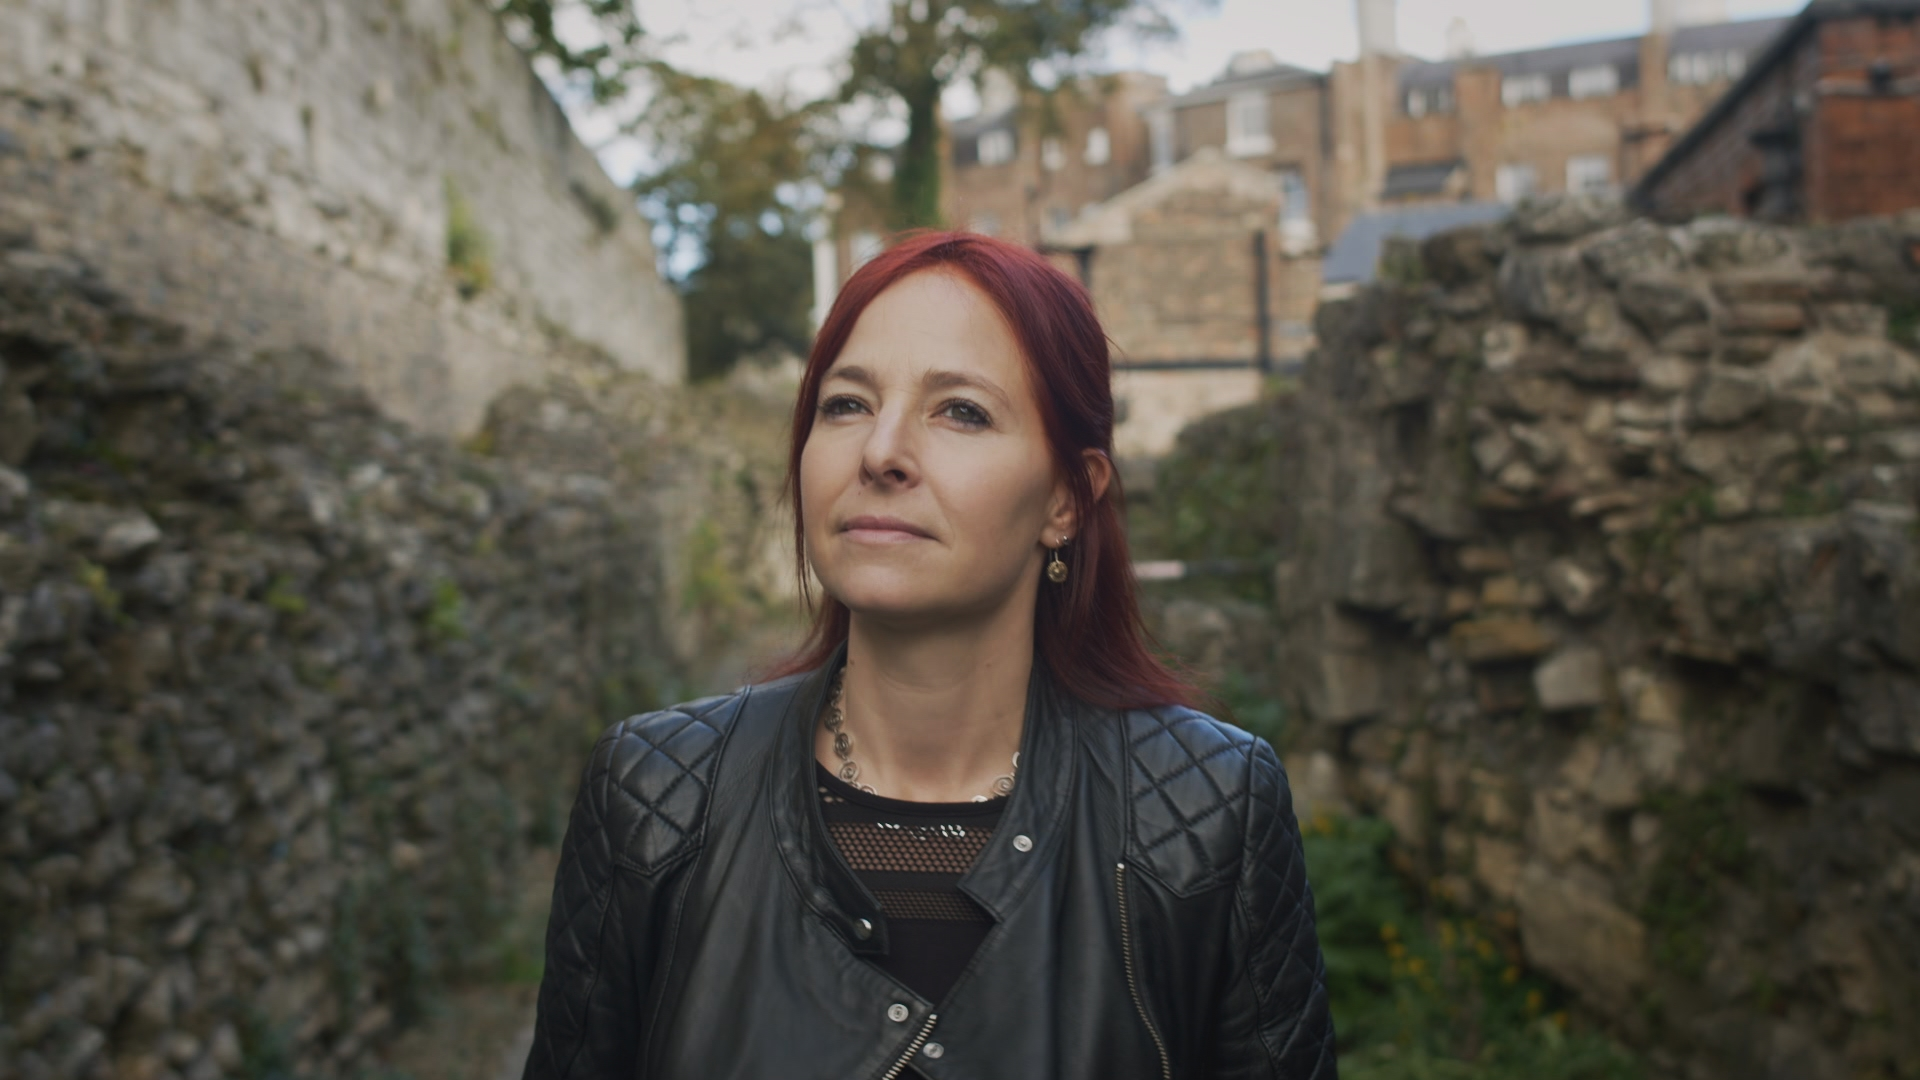 Image for Alice Roberts tour 2019 (no text).jpg